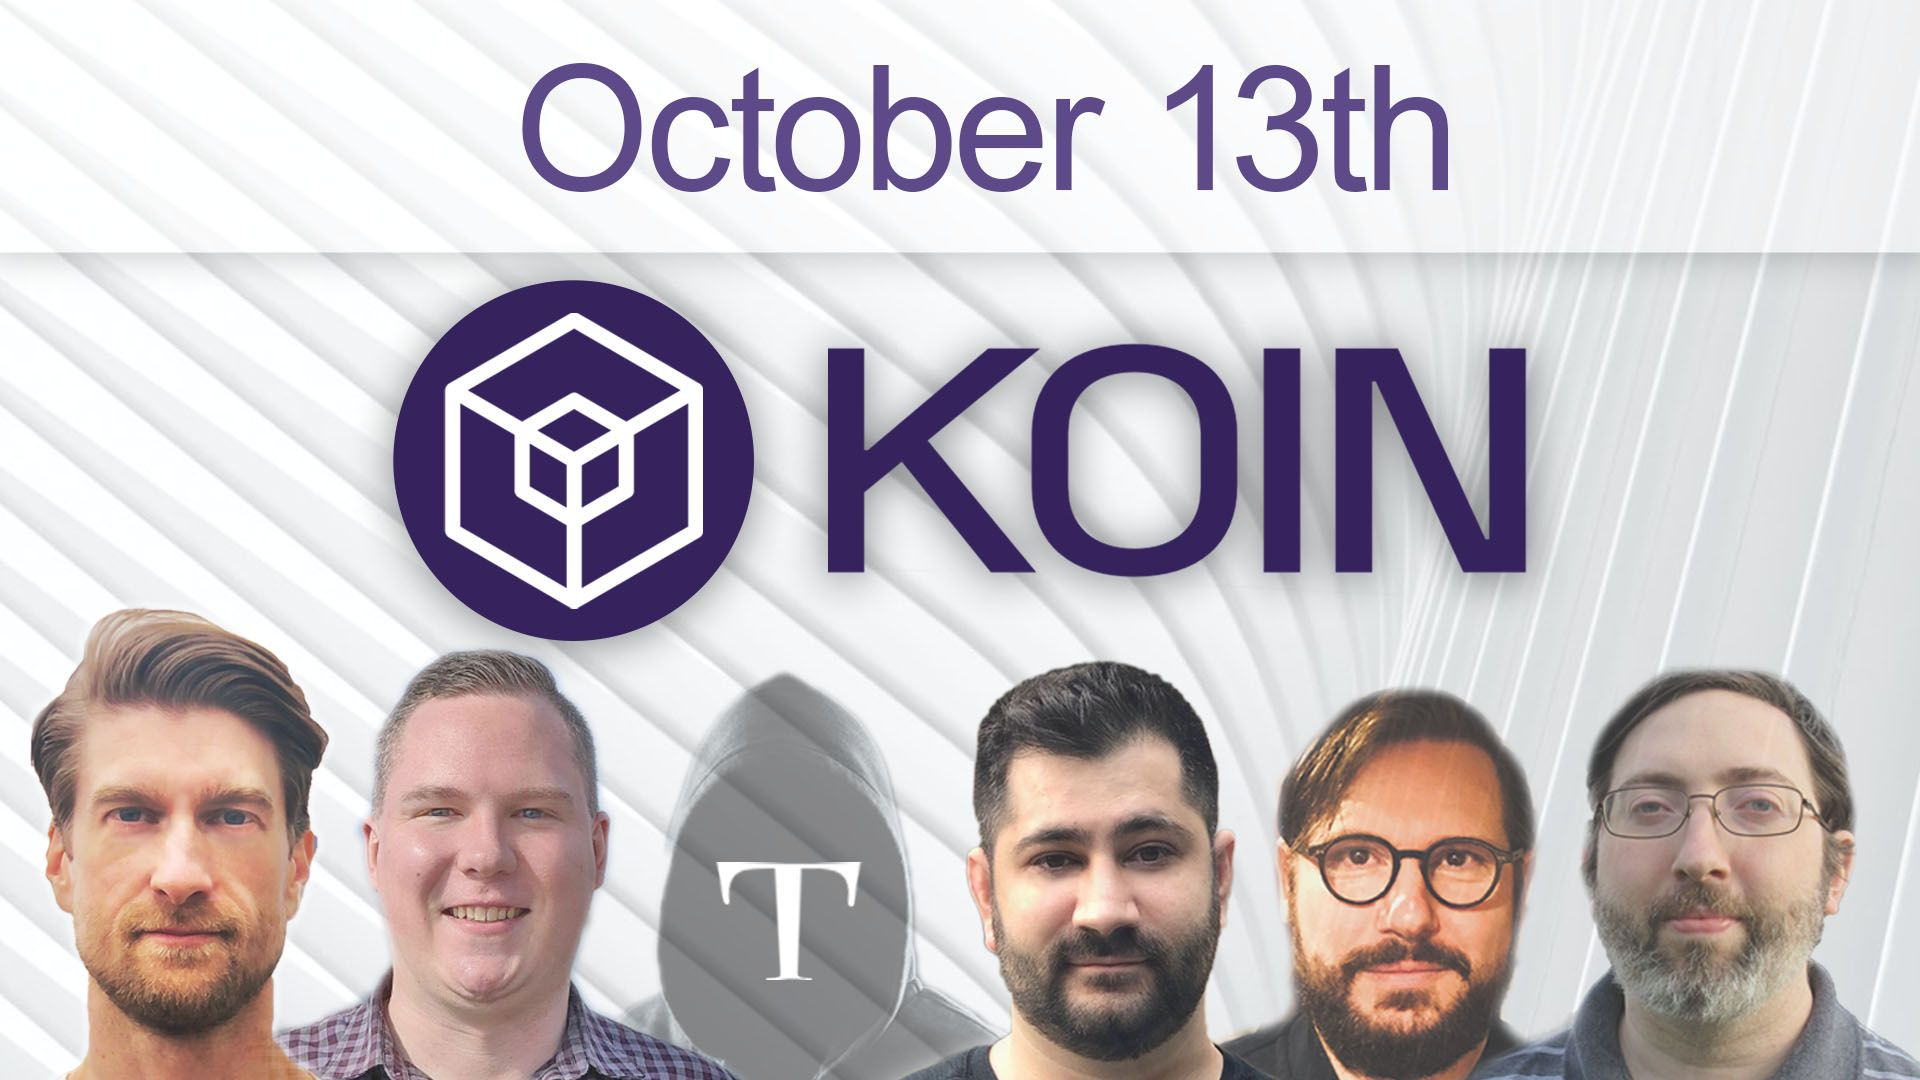 /the-koinos-blockchain-whitepaper-evolving-framework-with-modular-upgradeability-and-governance-333t3w2p feature image